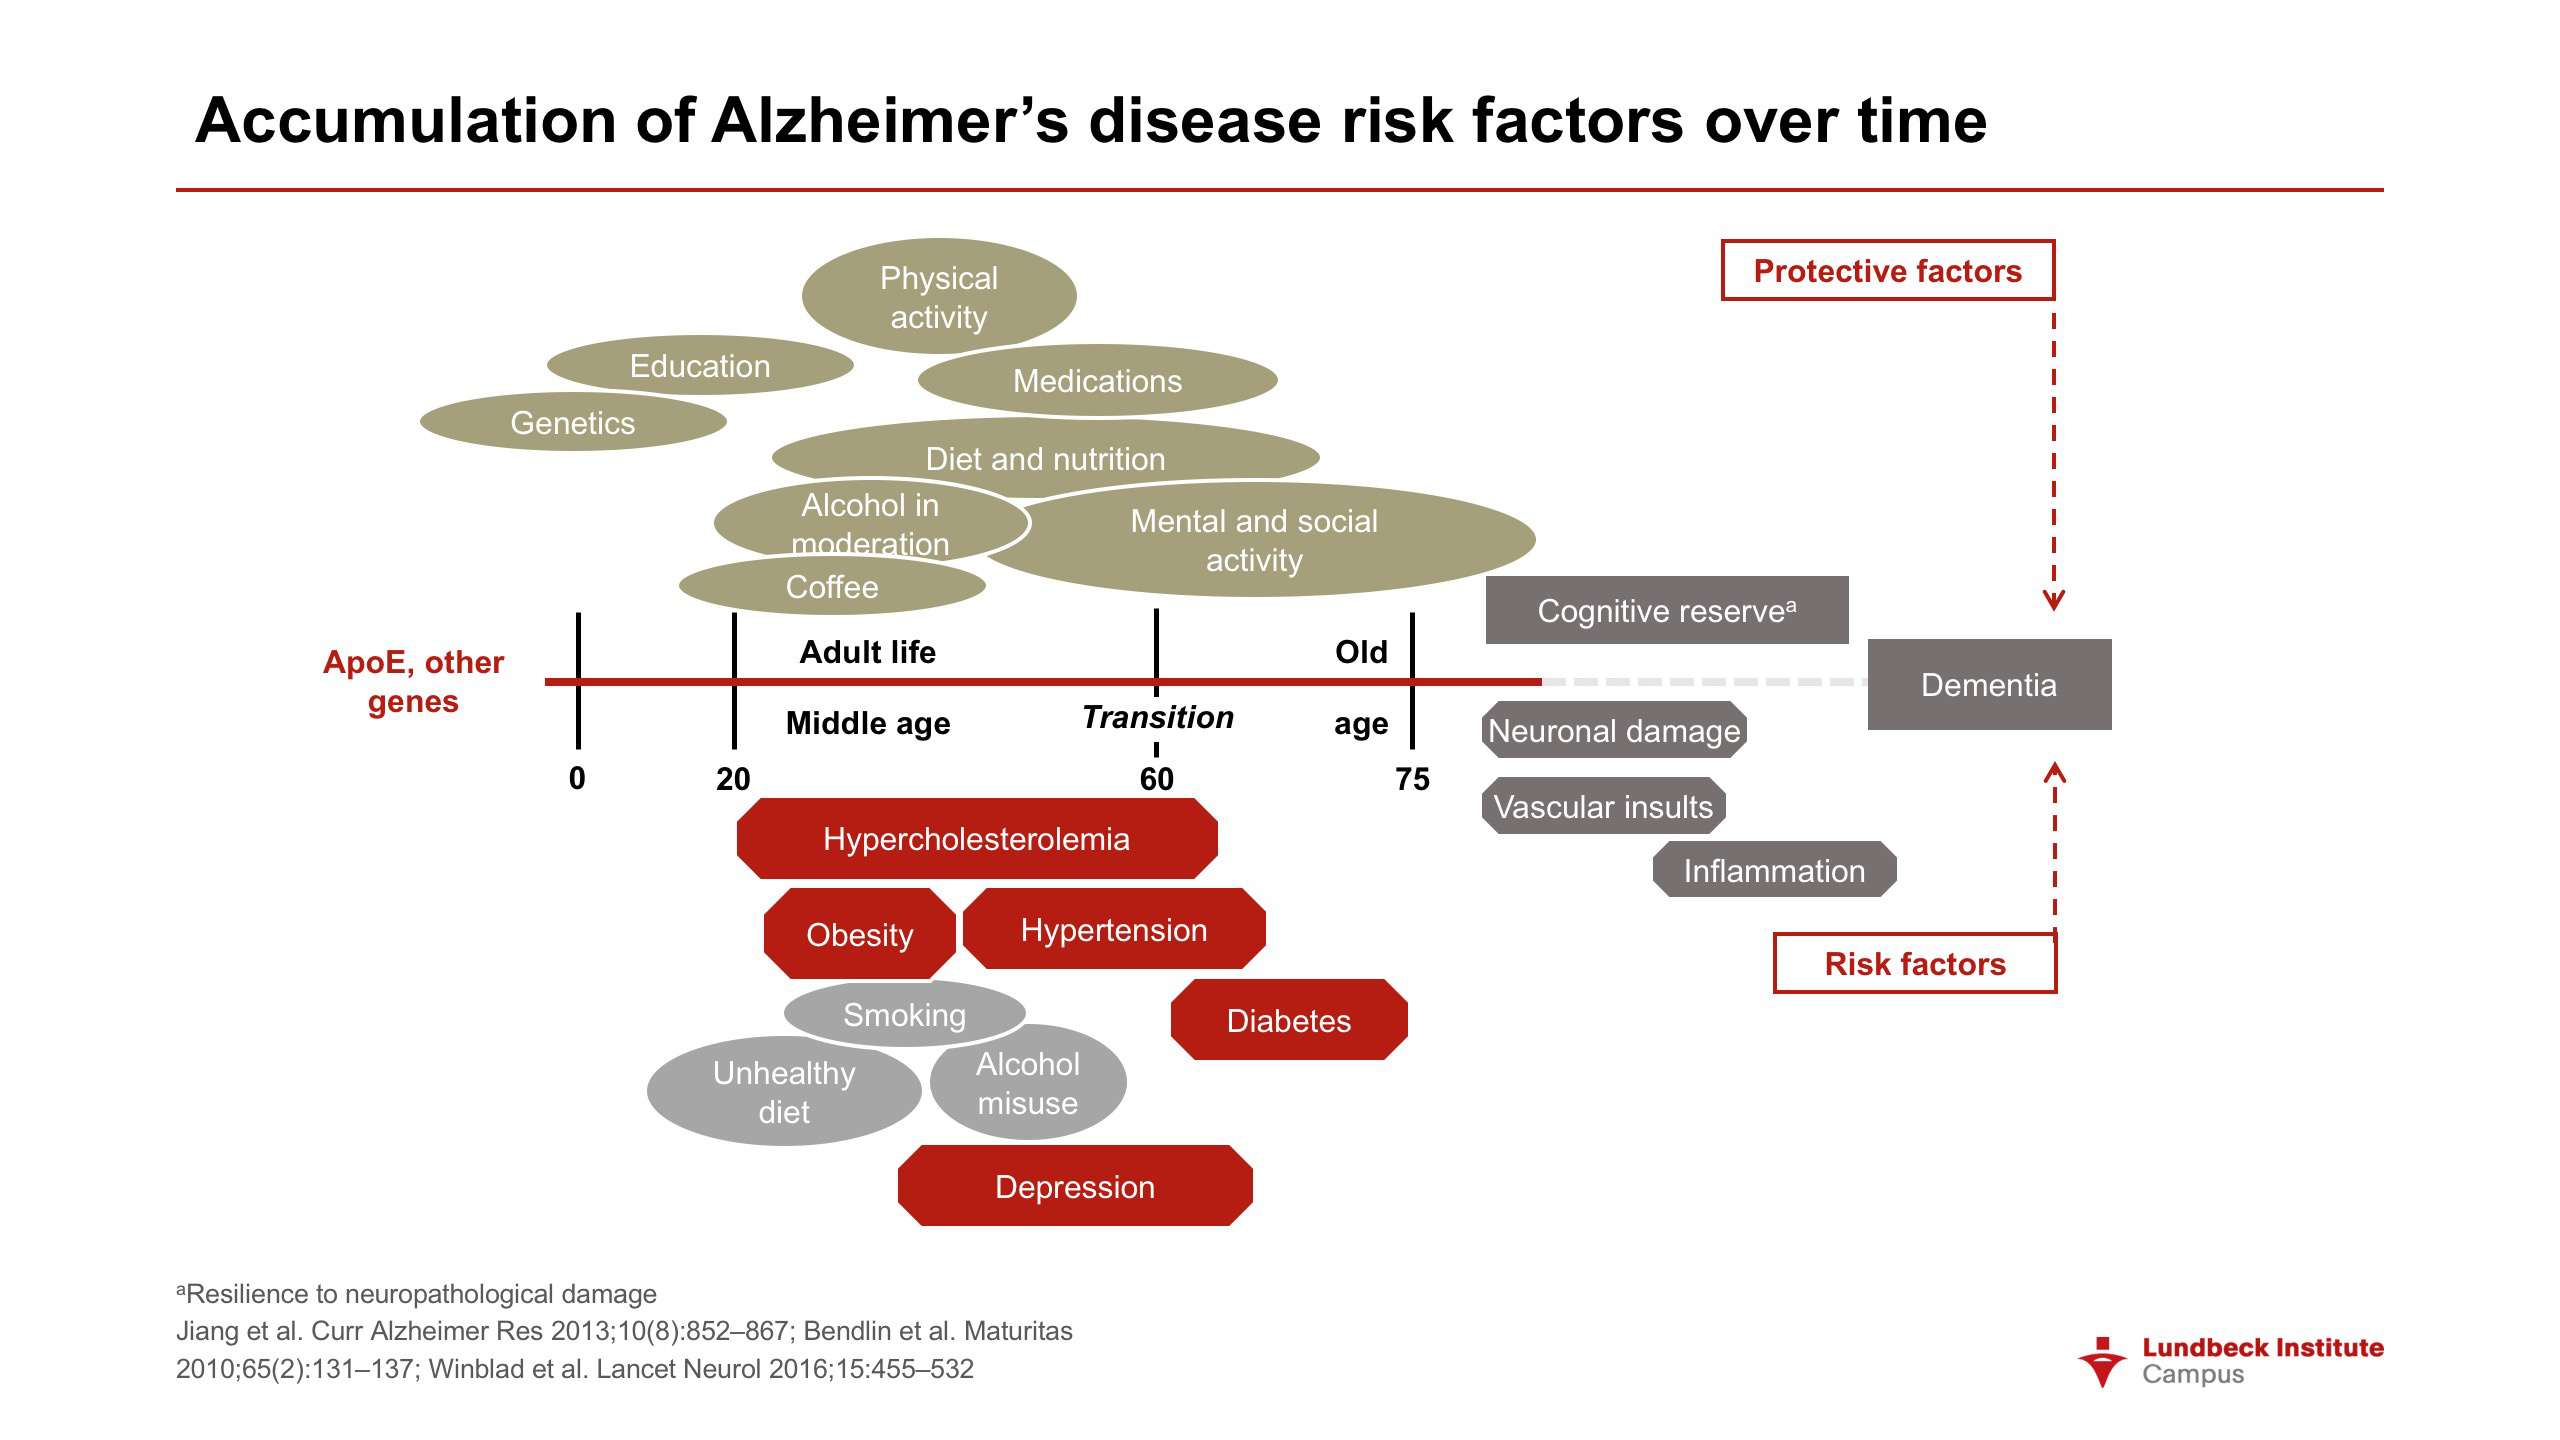 Accumulation of Alzheimer's disease risk factors over time